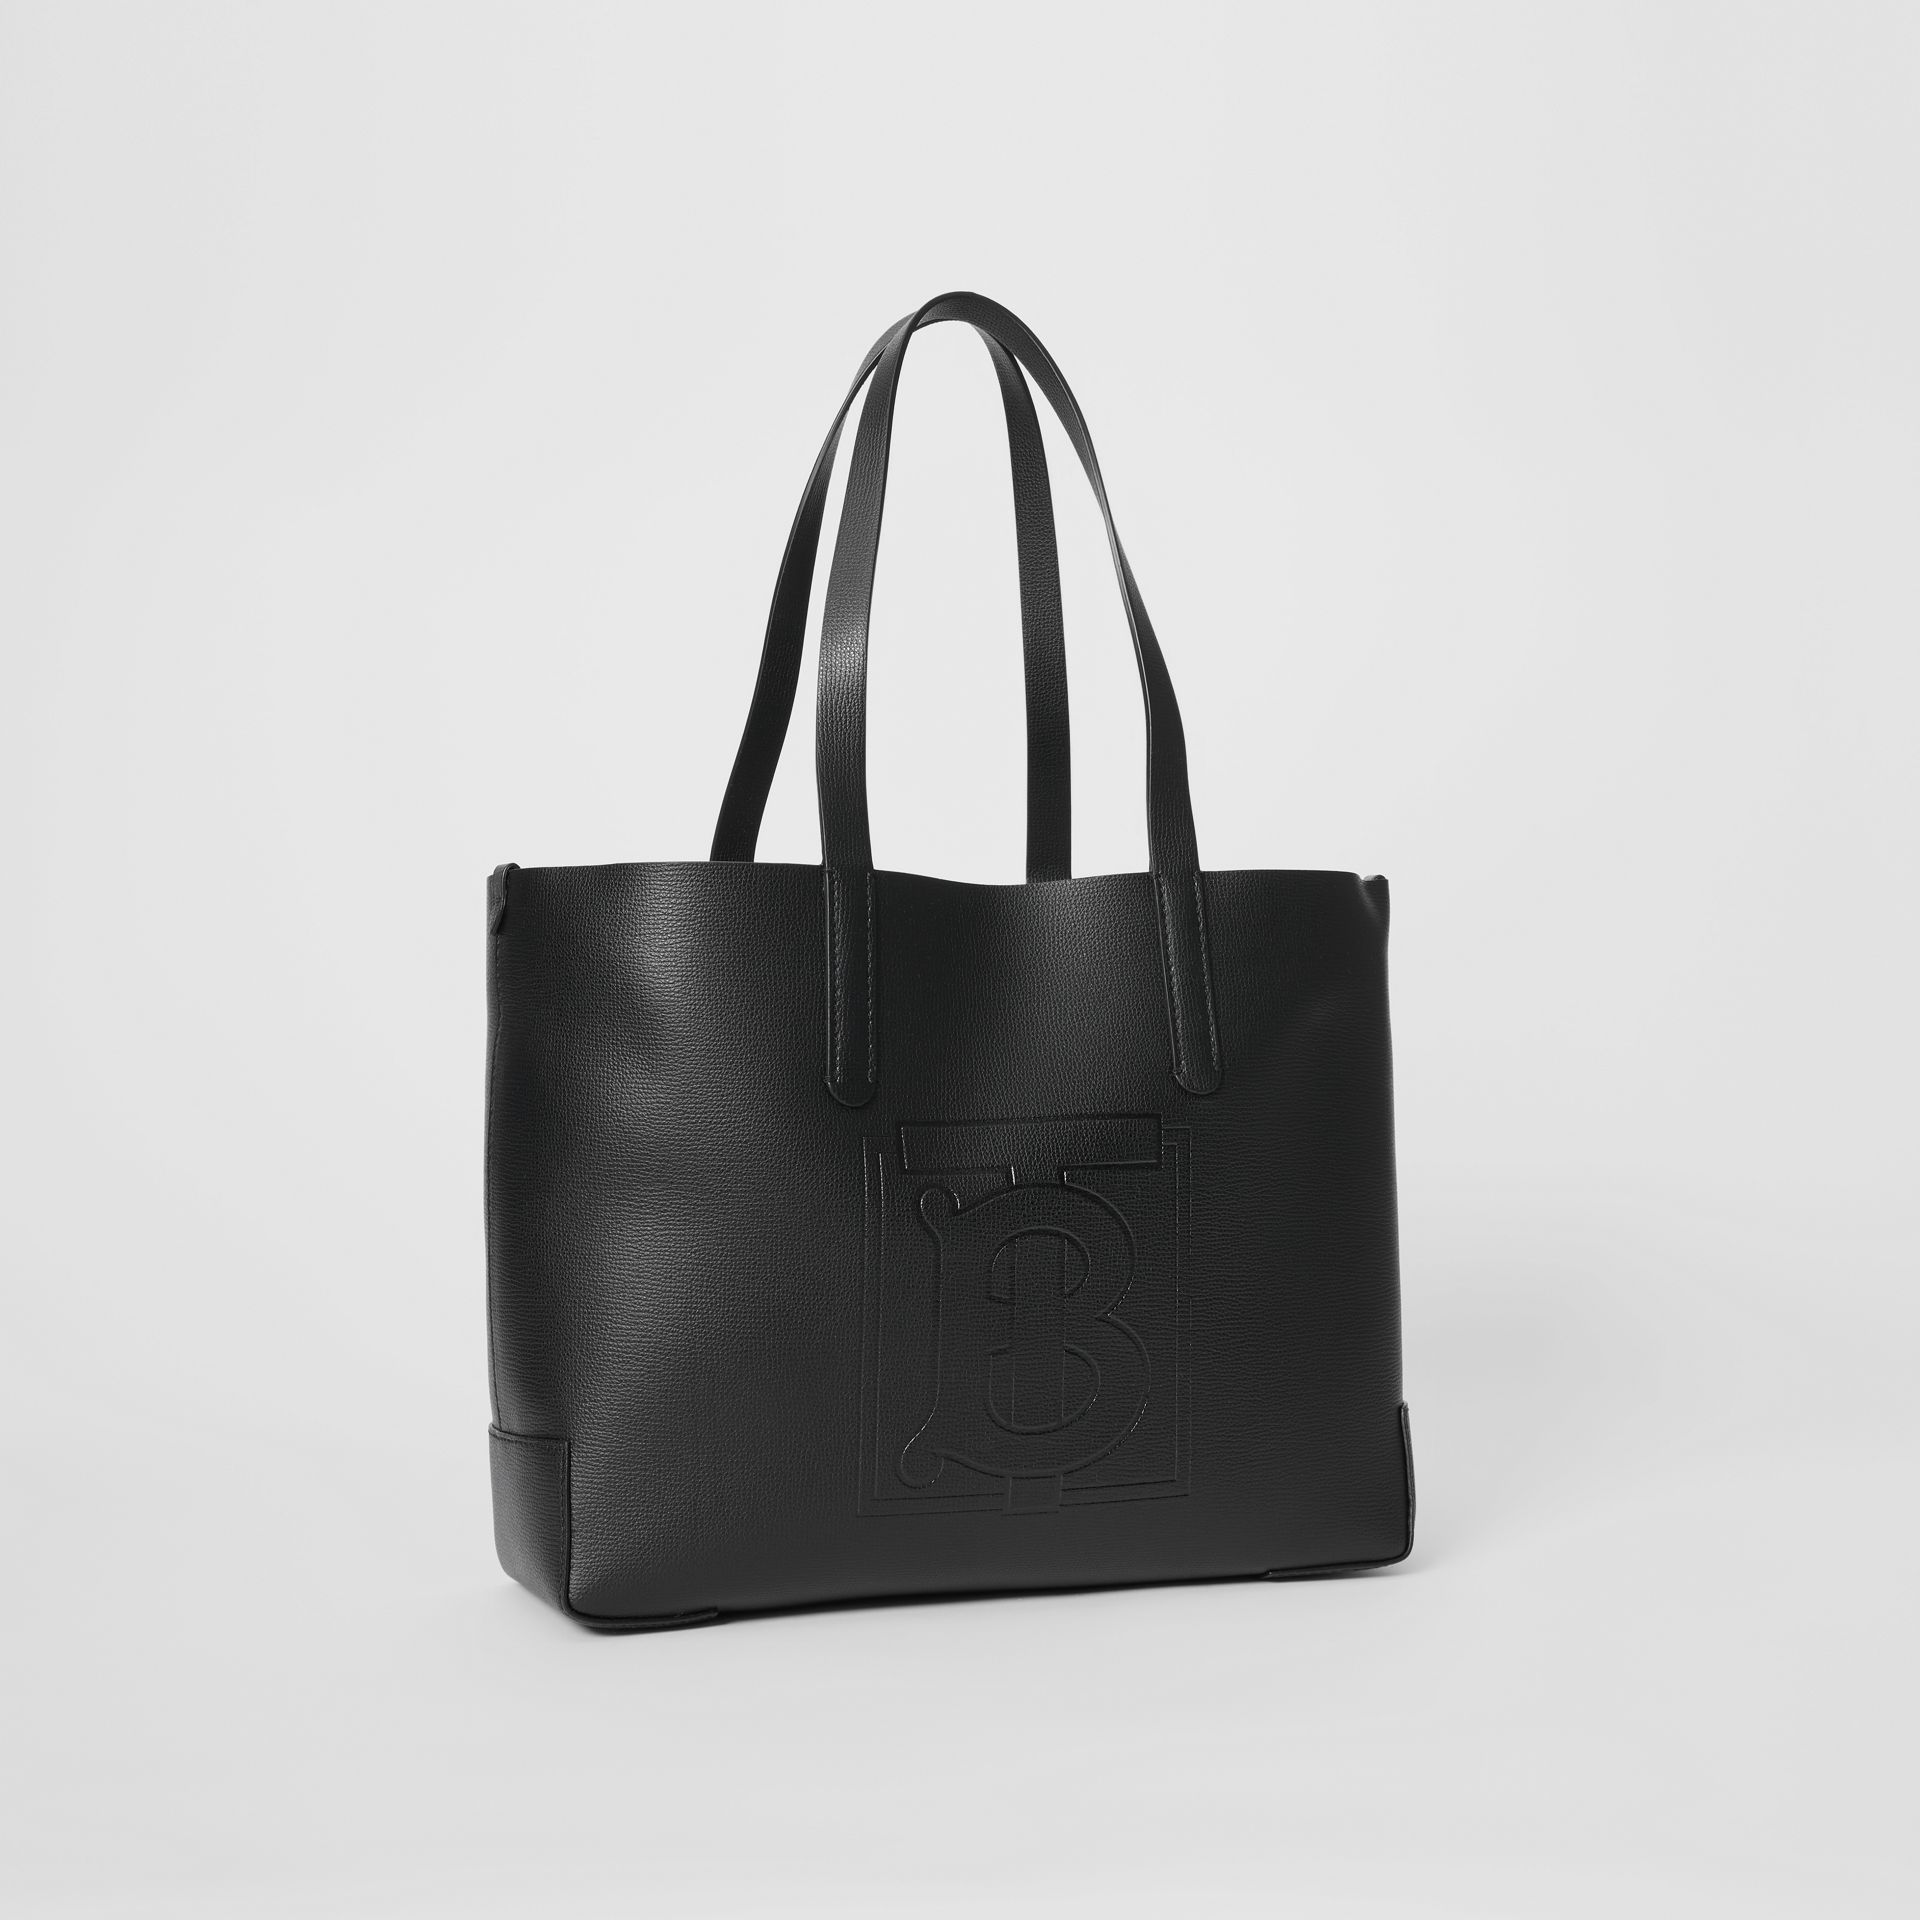 Embossed Monogram Motif Leather Tote in Black - Women | Burberry United Kingdom - gallery image 6